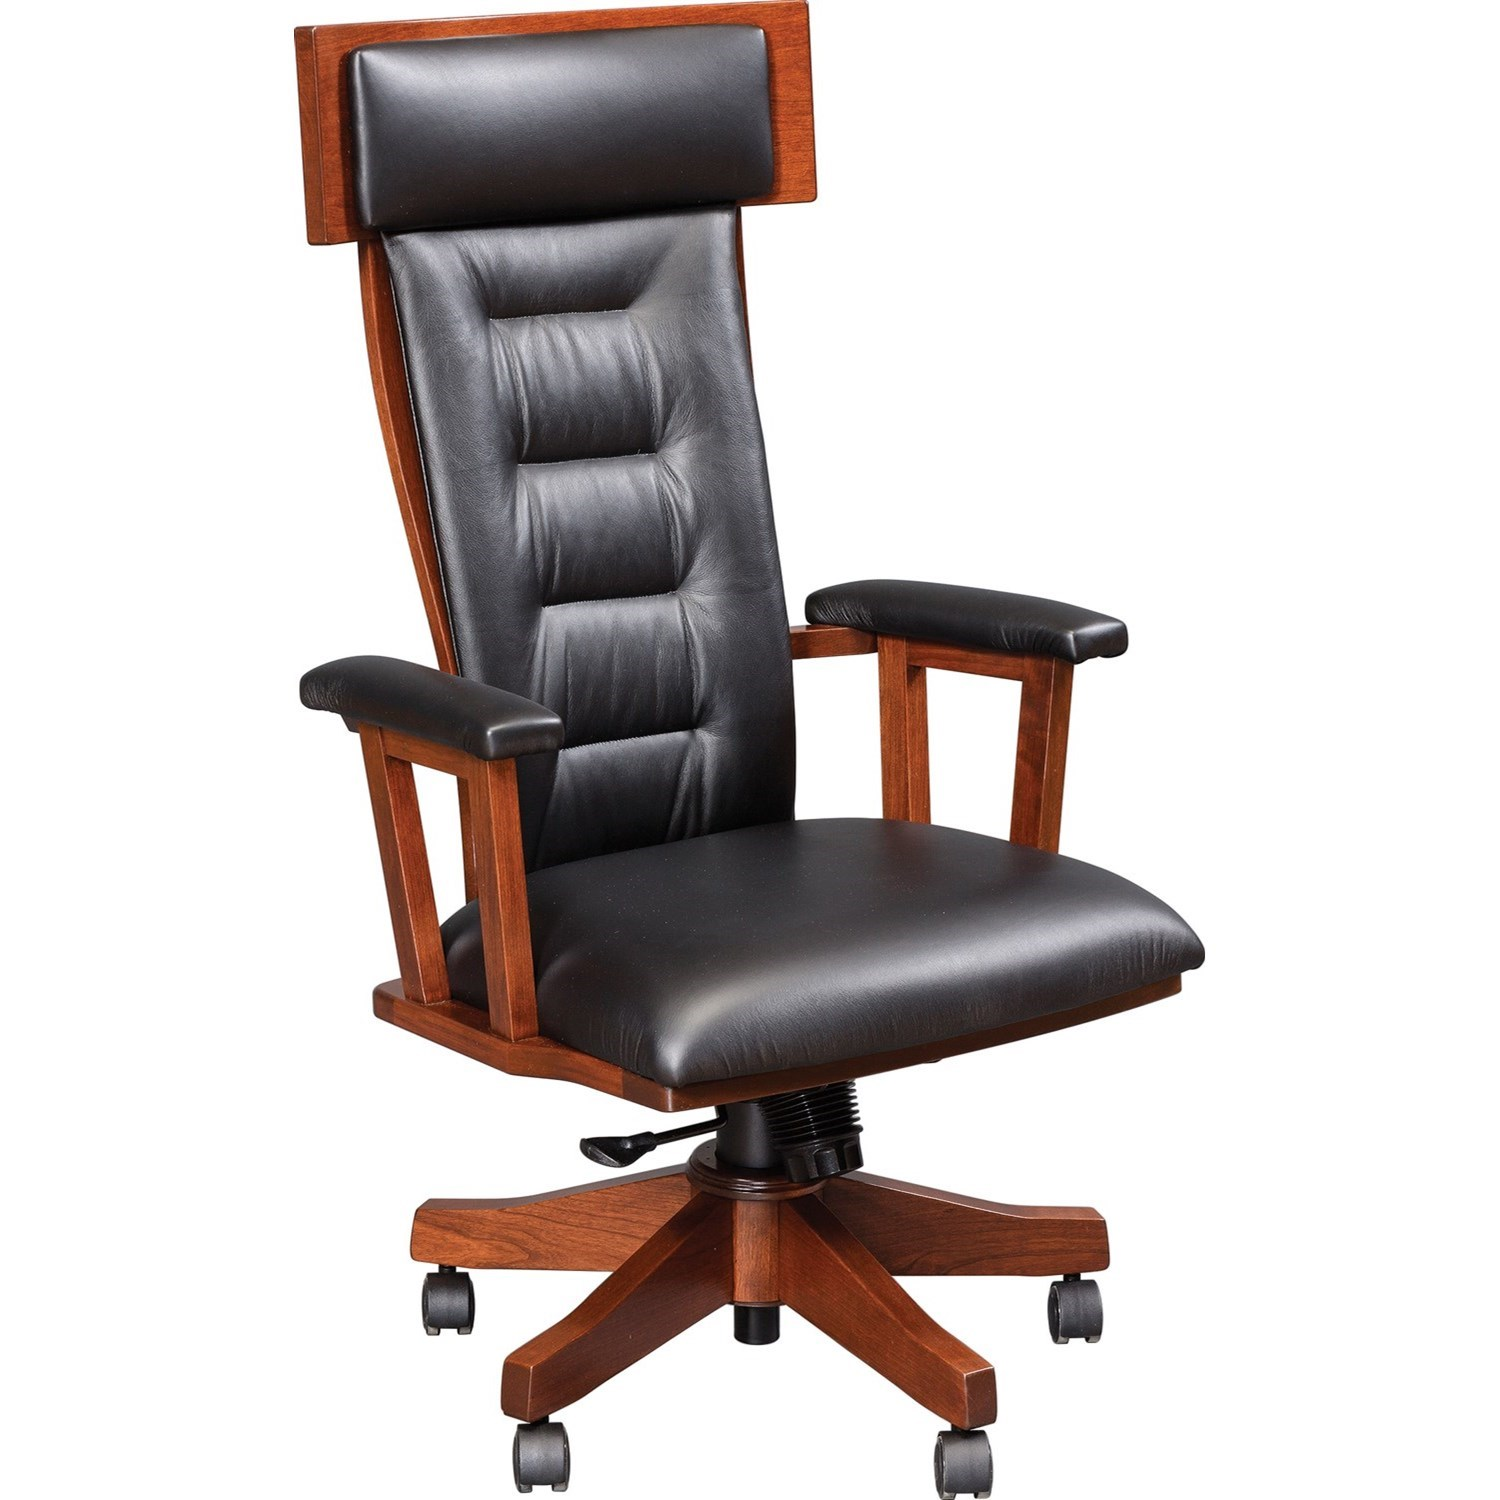 Deck Chairs Arm Desk Chair by Buckeye Rockers at Saugerties Furniture Mart